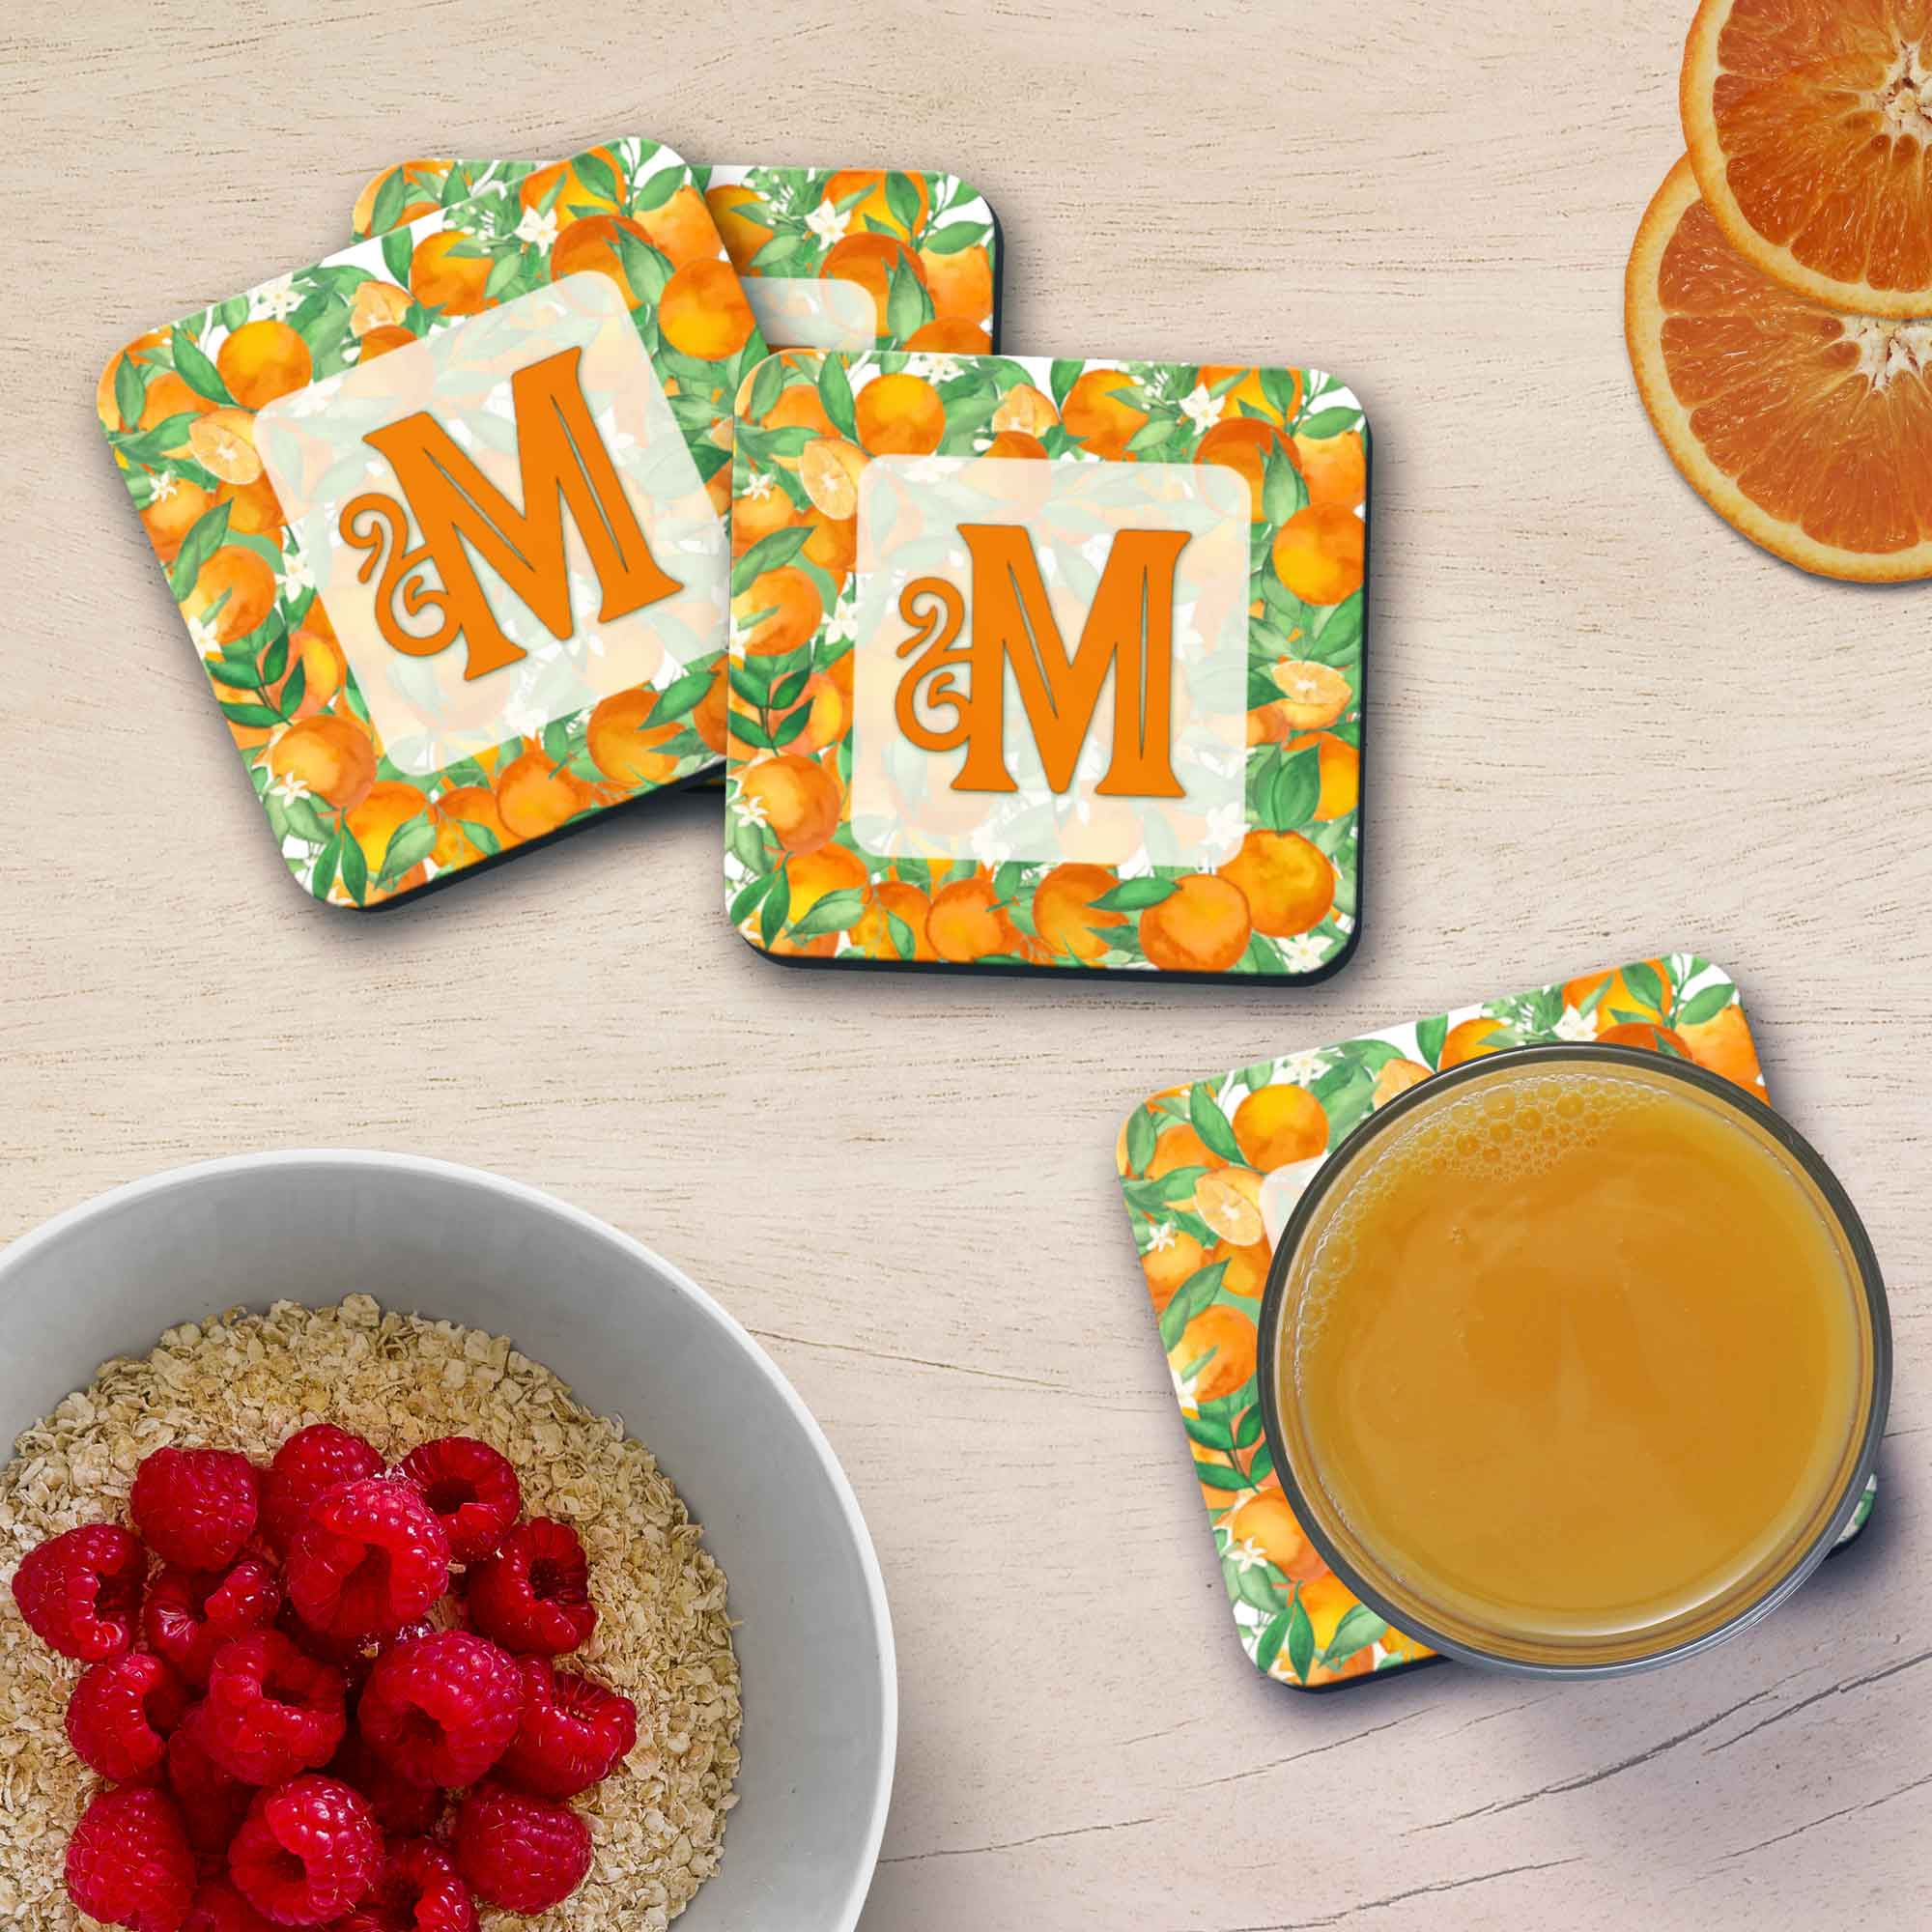 Copyright PaisleyGroveGIFTS S711a Set of 4 Redlands California Oranges Home Decor Coasters with Cork Backing Custom Gift